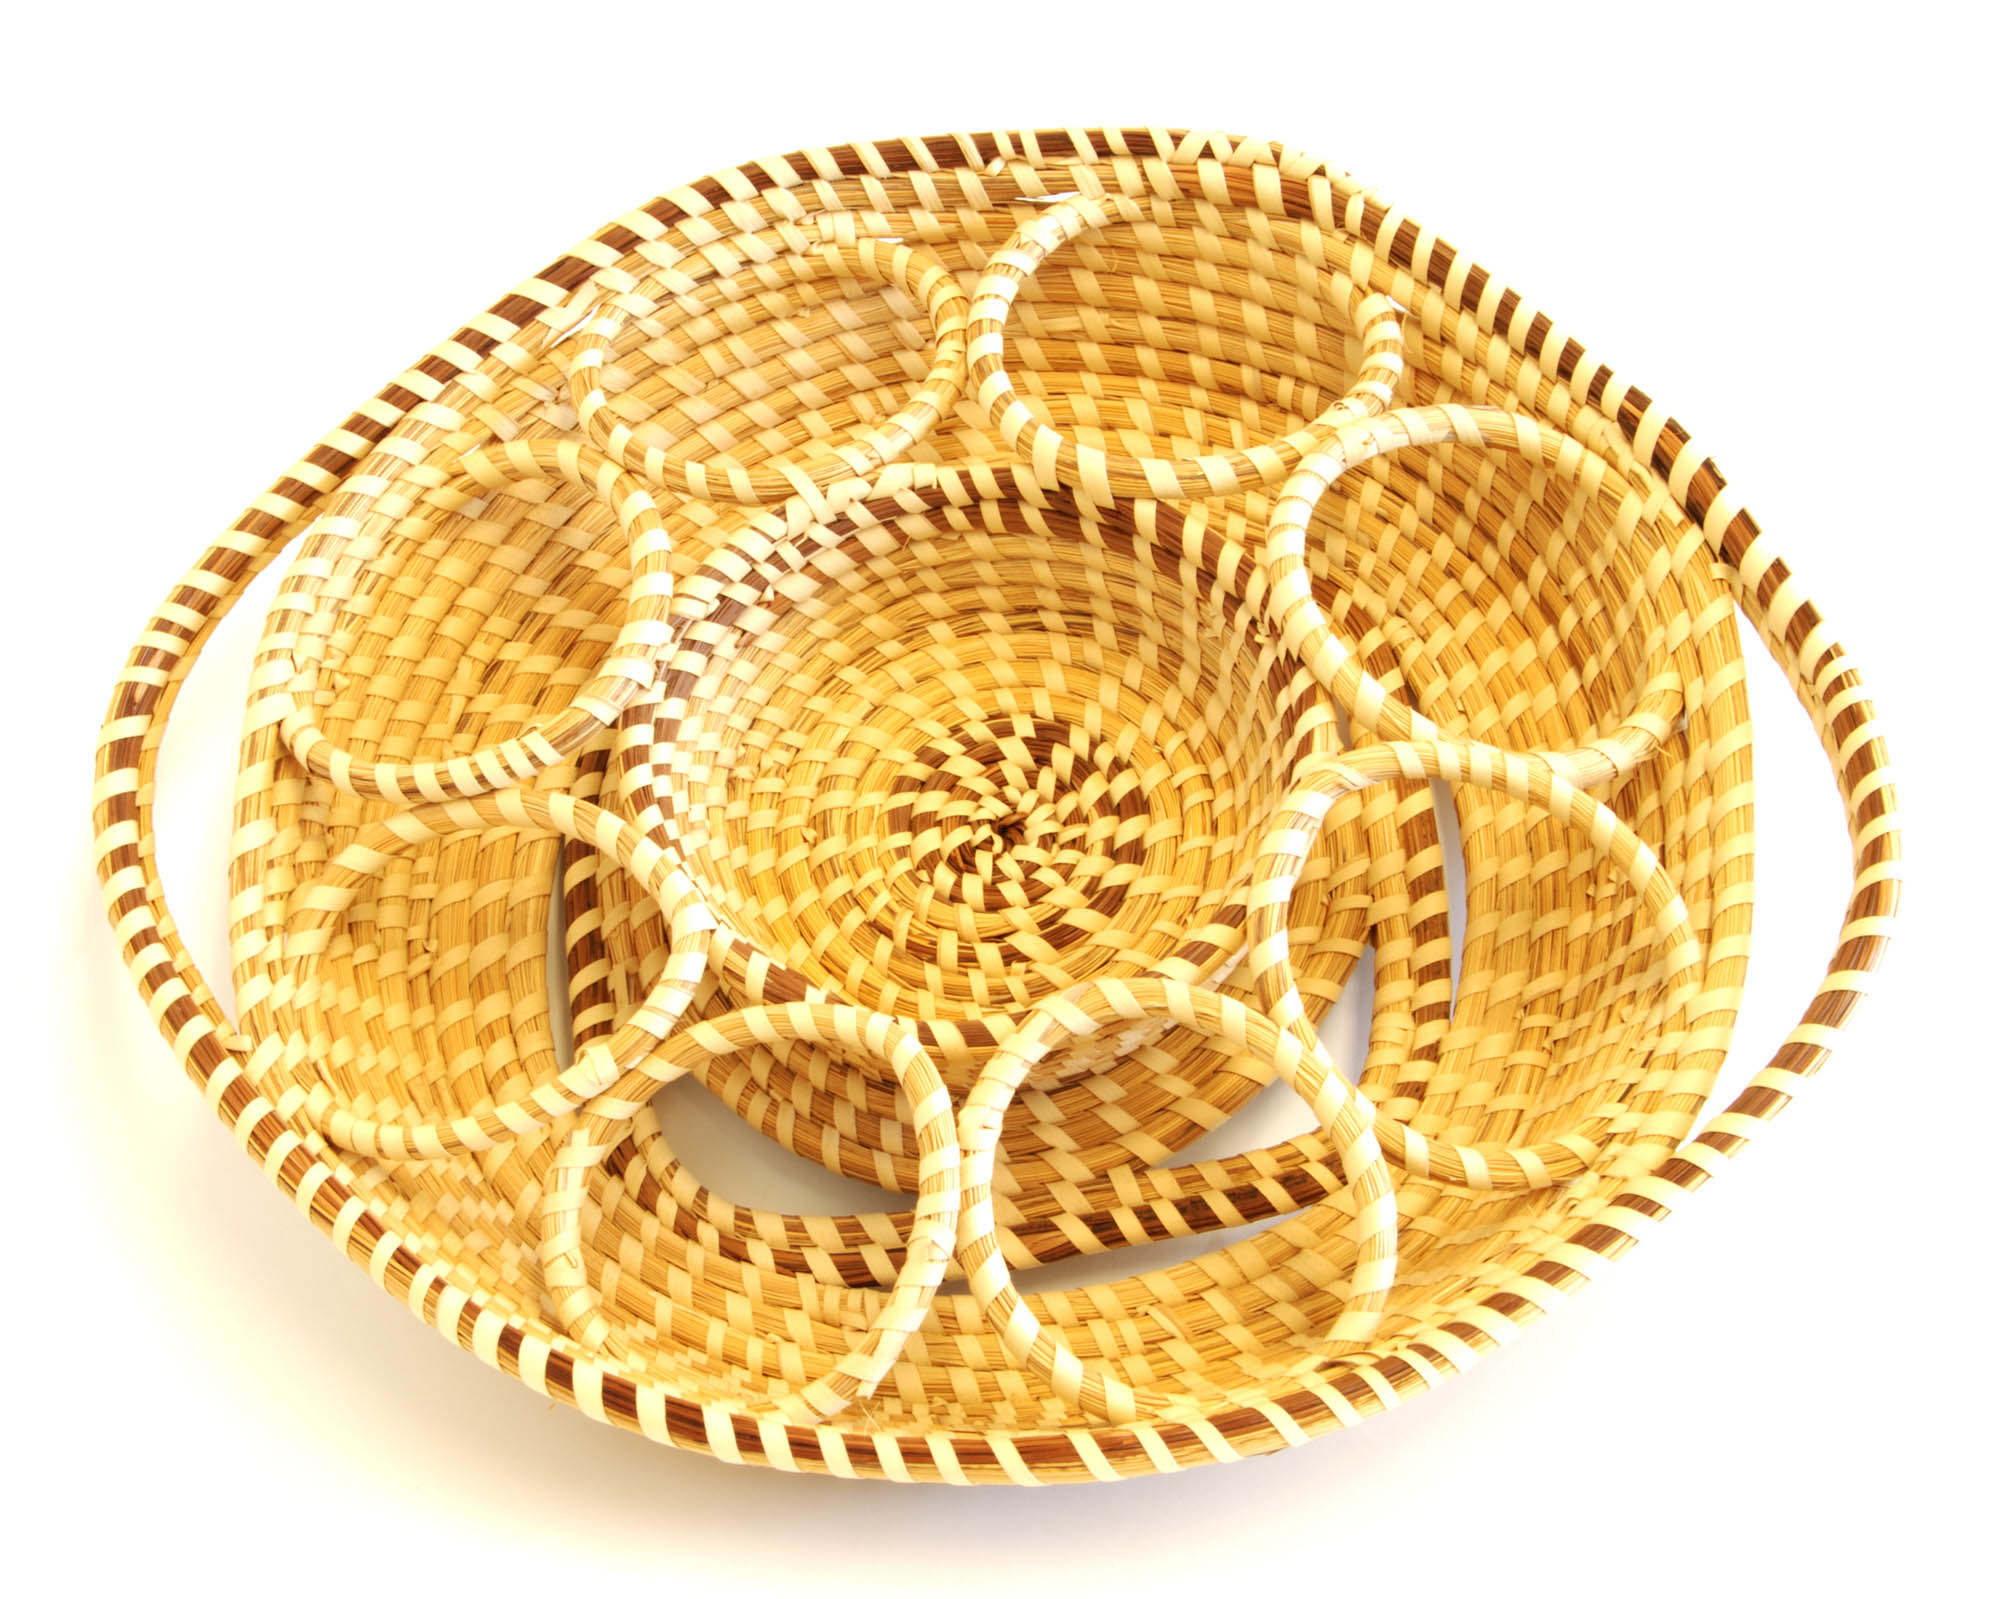 Sweetgrass glass server (Ring tray)